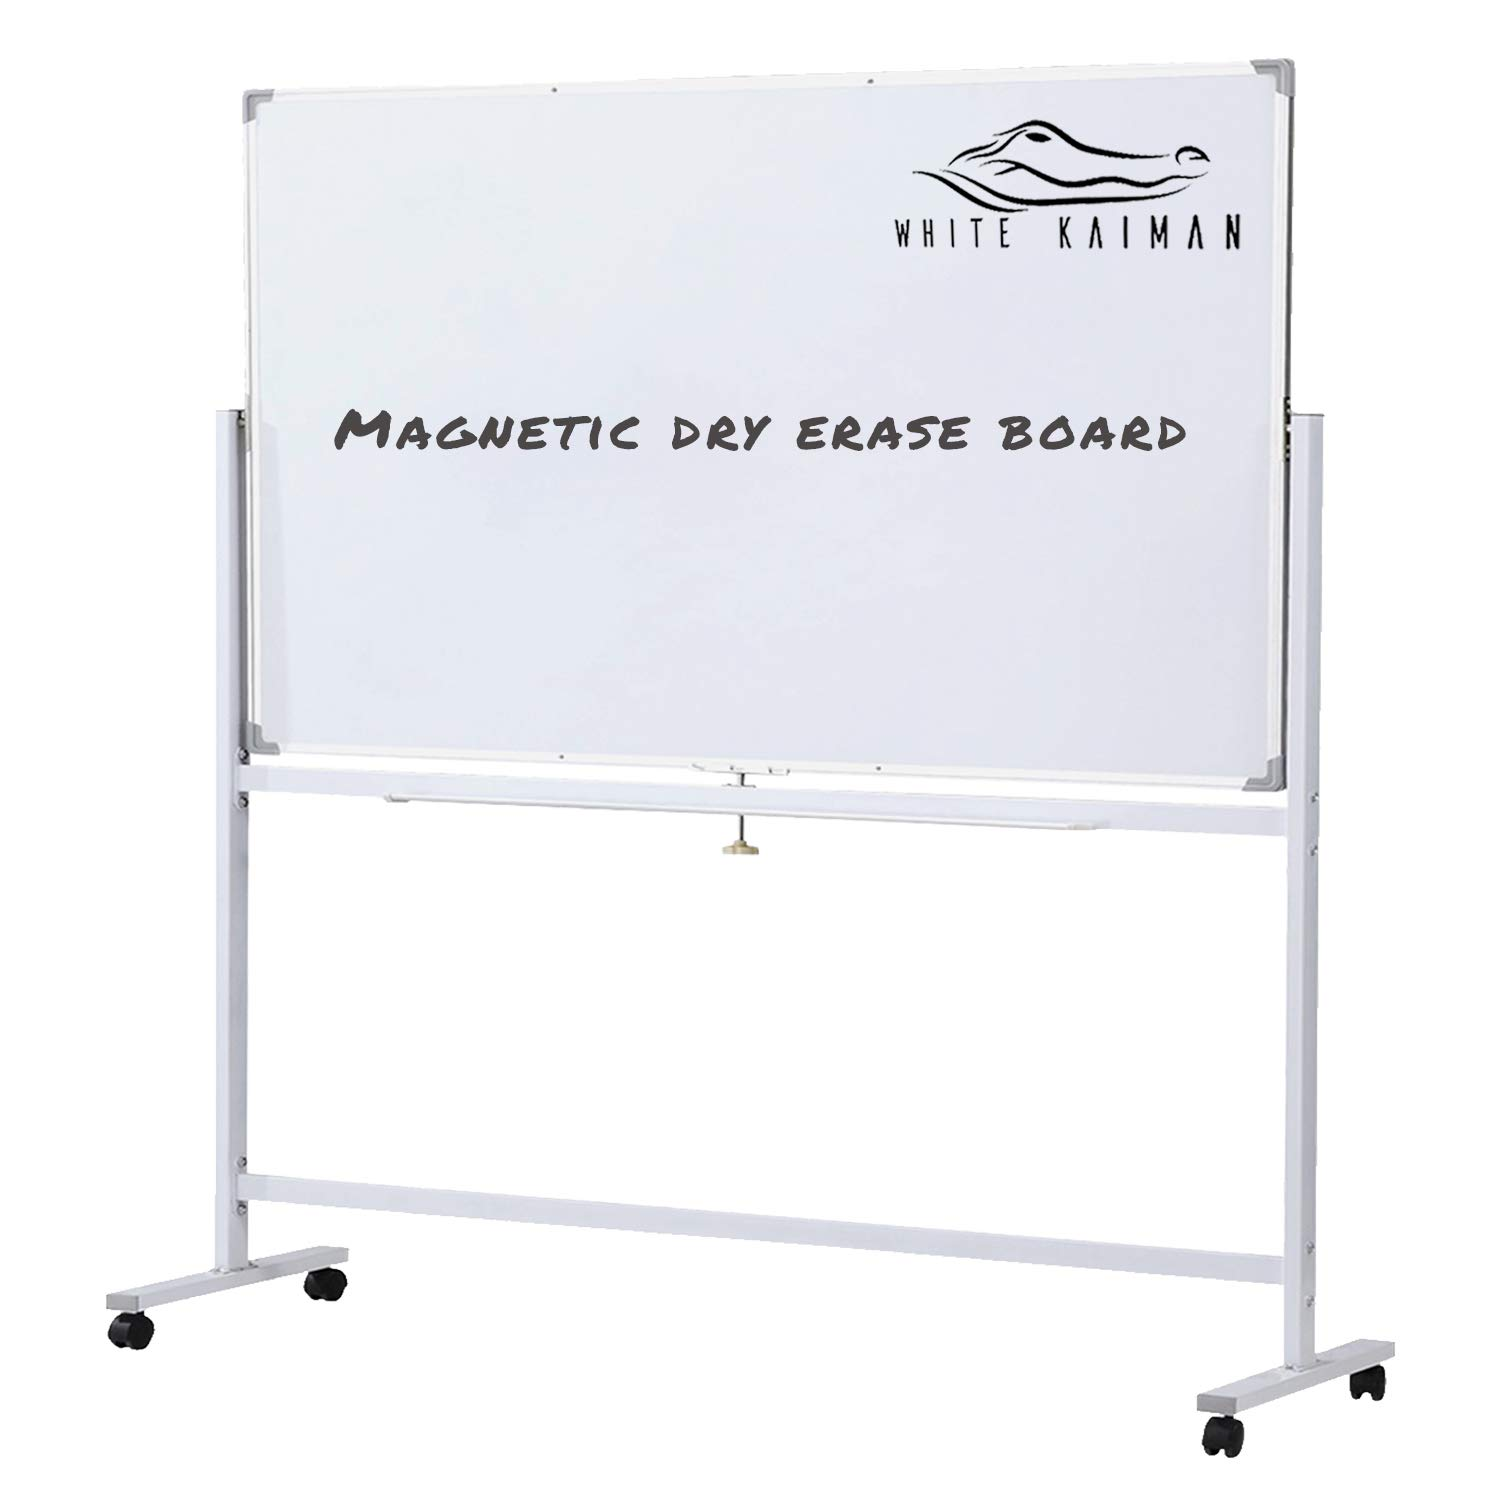 White Kaiman Dry Erase Magnetic Whiteboard w/Stand - Double Sided Reversible Marker Board, Mobile Metal Stand w/ 4 Locking Wheels - Accessories Included One Marker & Eraser and 3 Magnets (48'' x 24'')